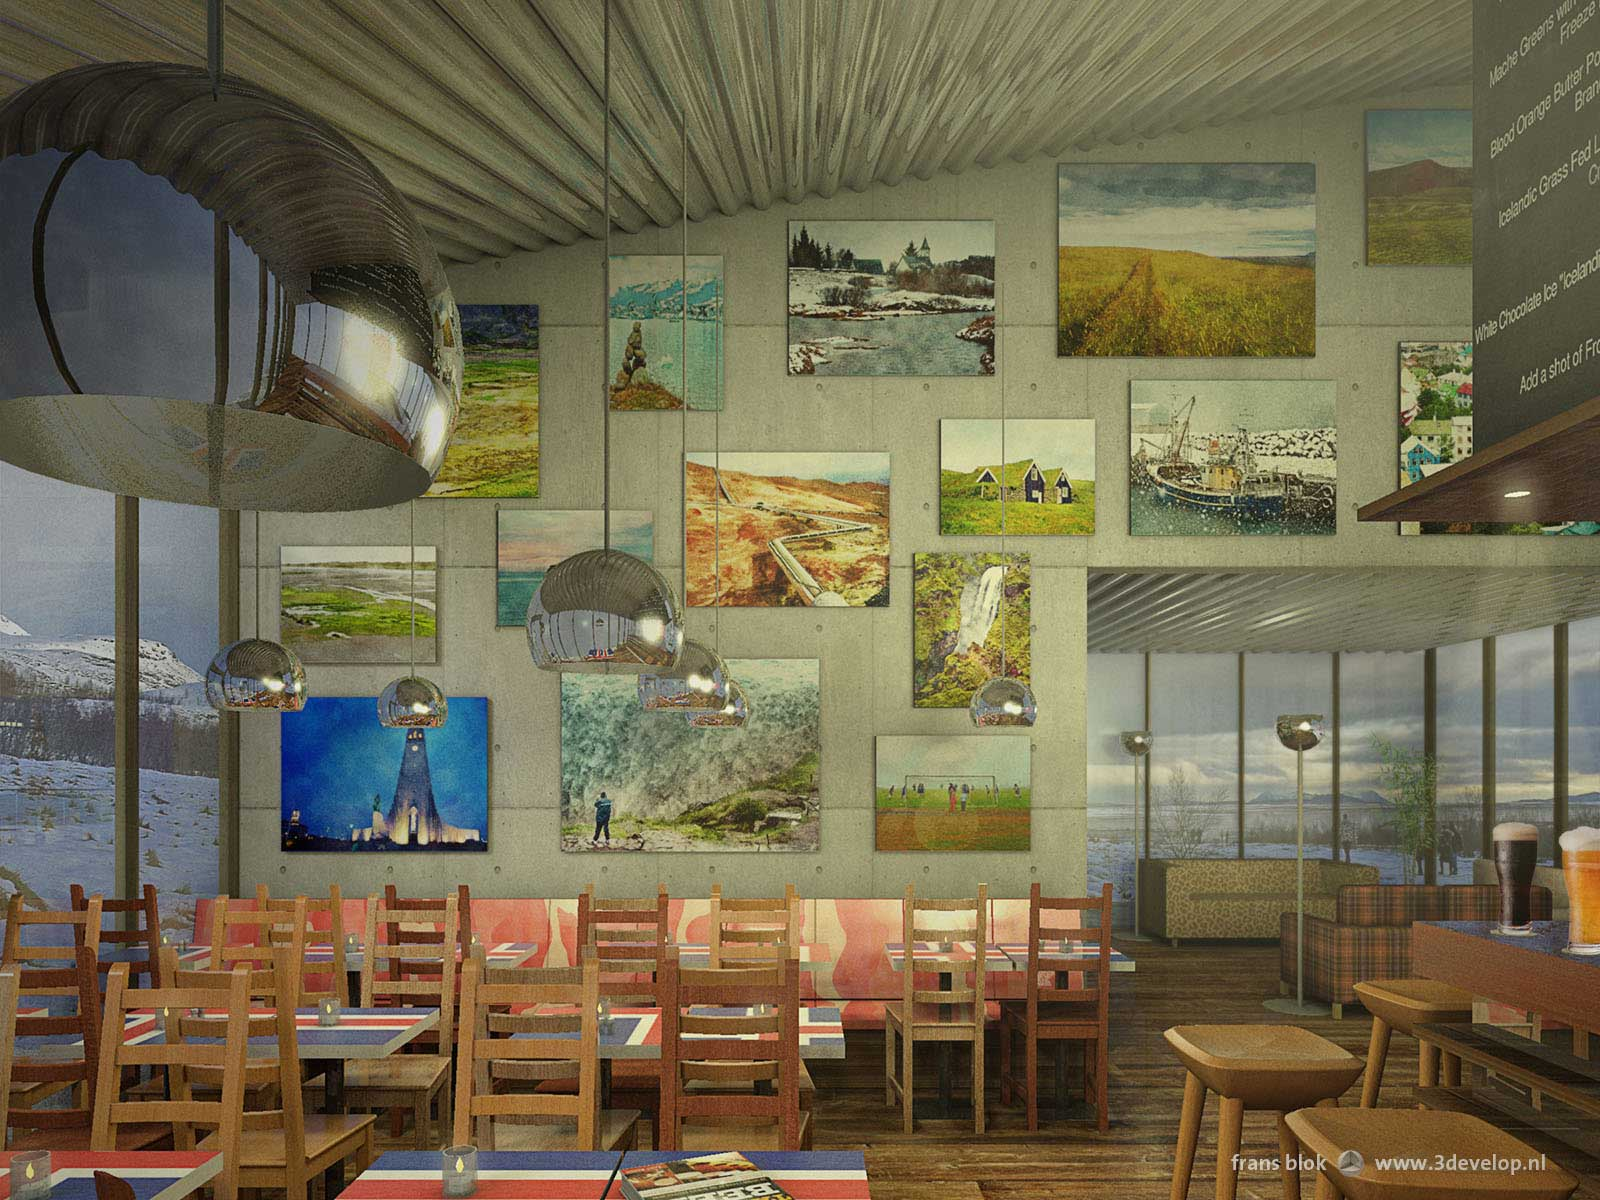 Artist impression of a fictional Icelandic cafe